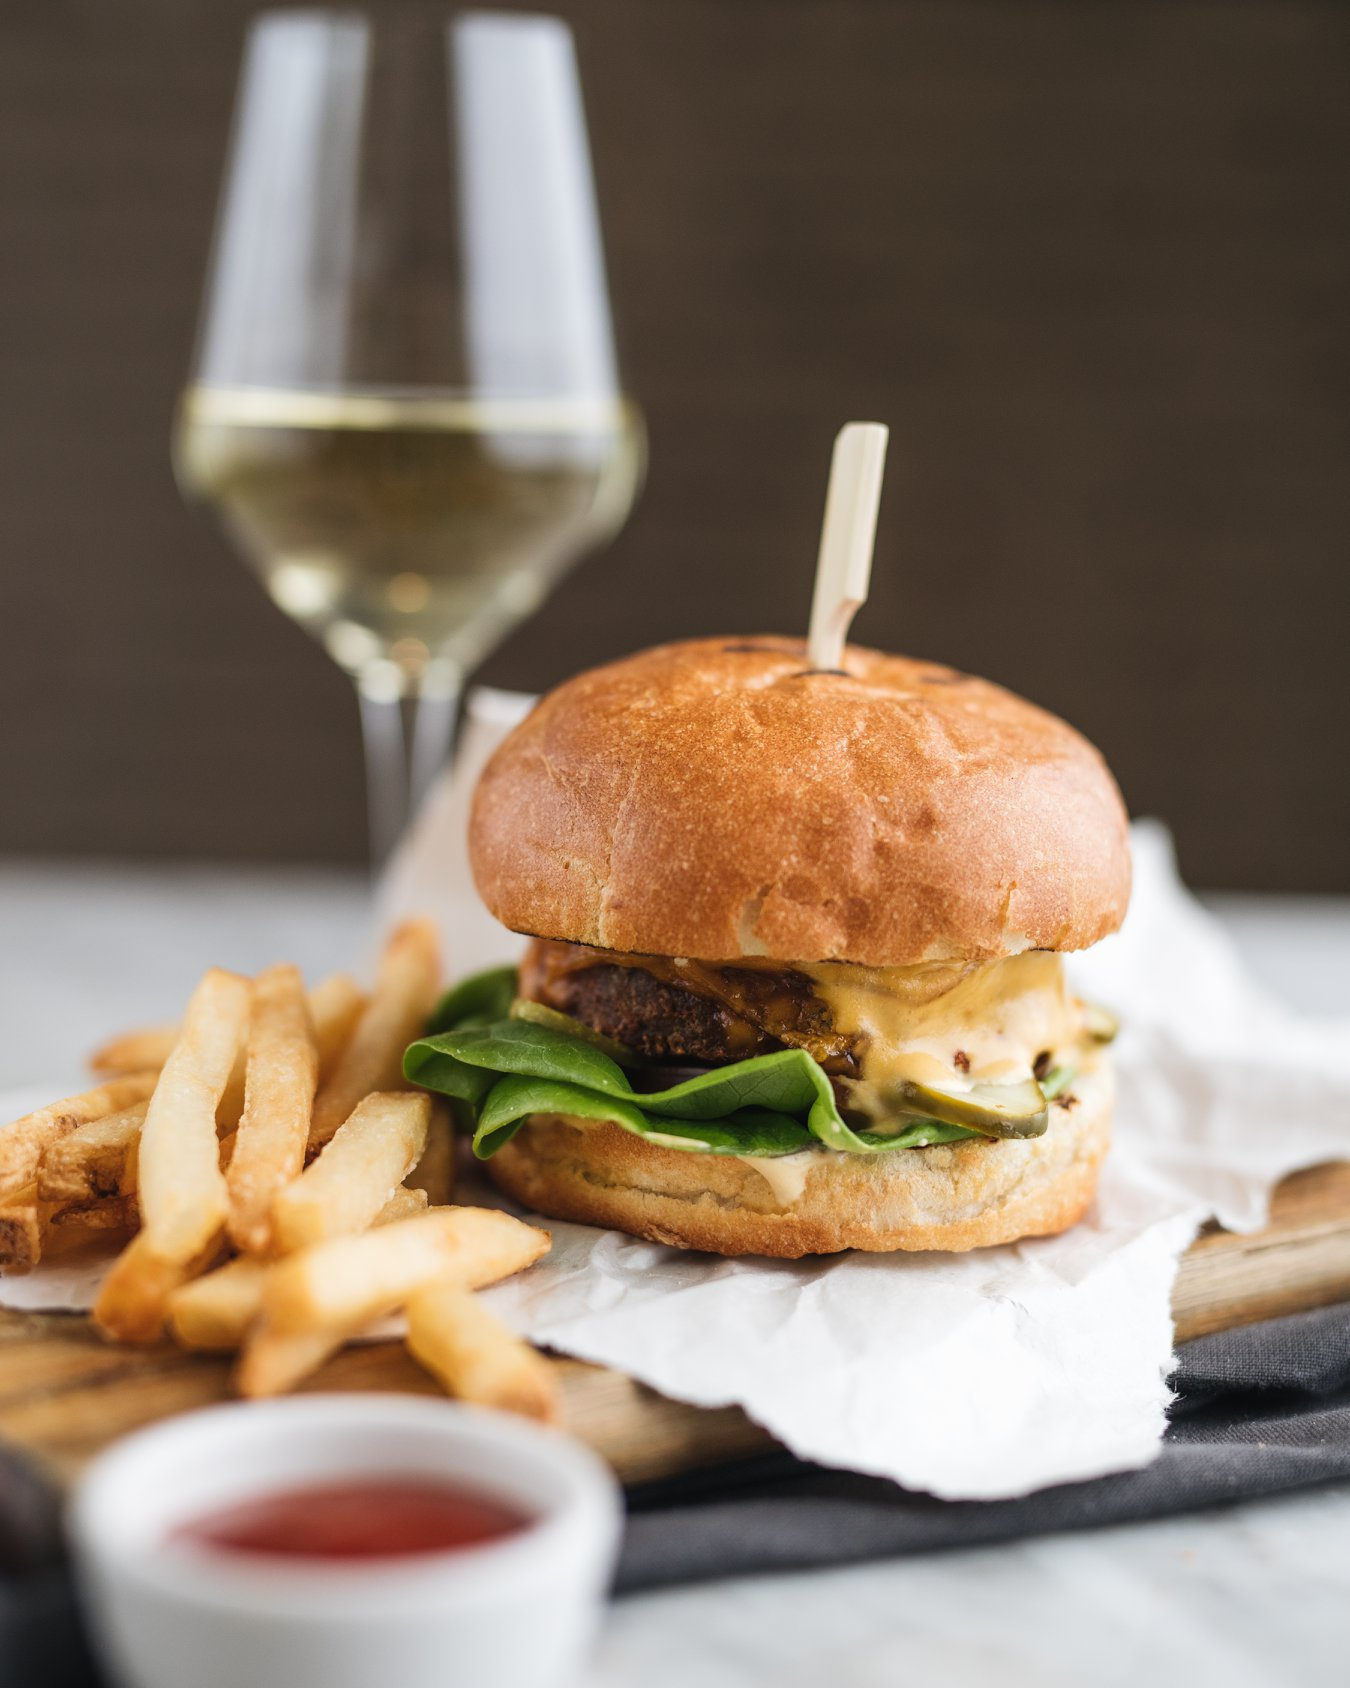 A burger with fries on a wooden platter in front of a wine glass.